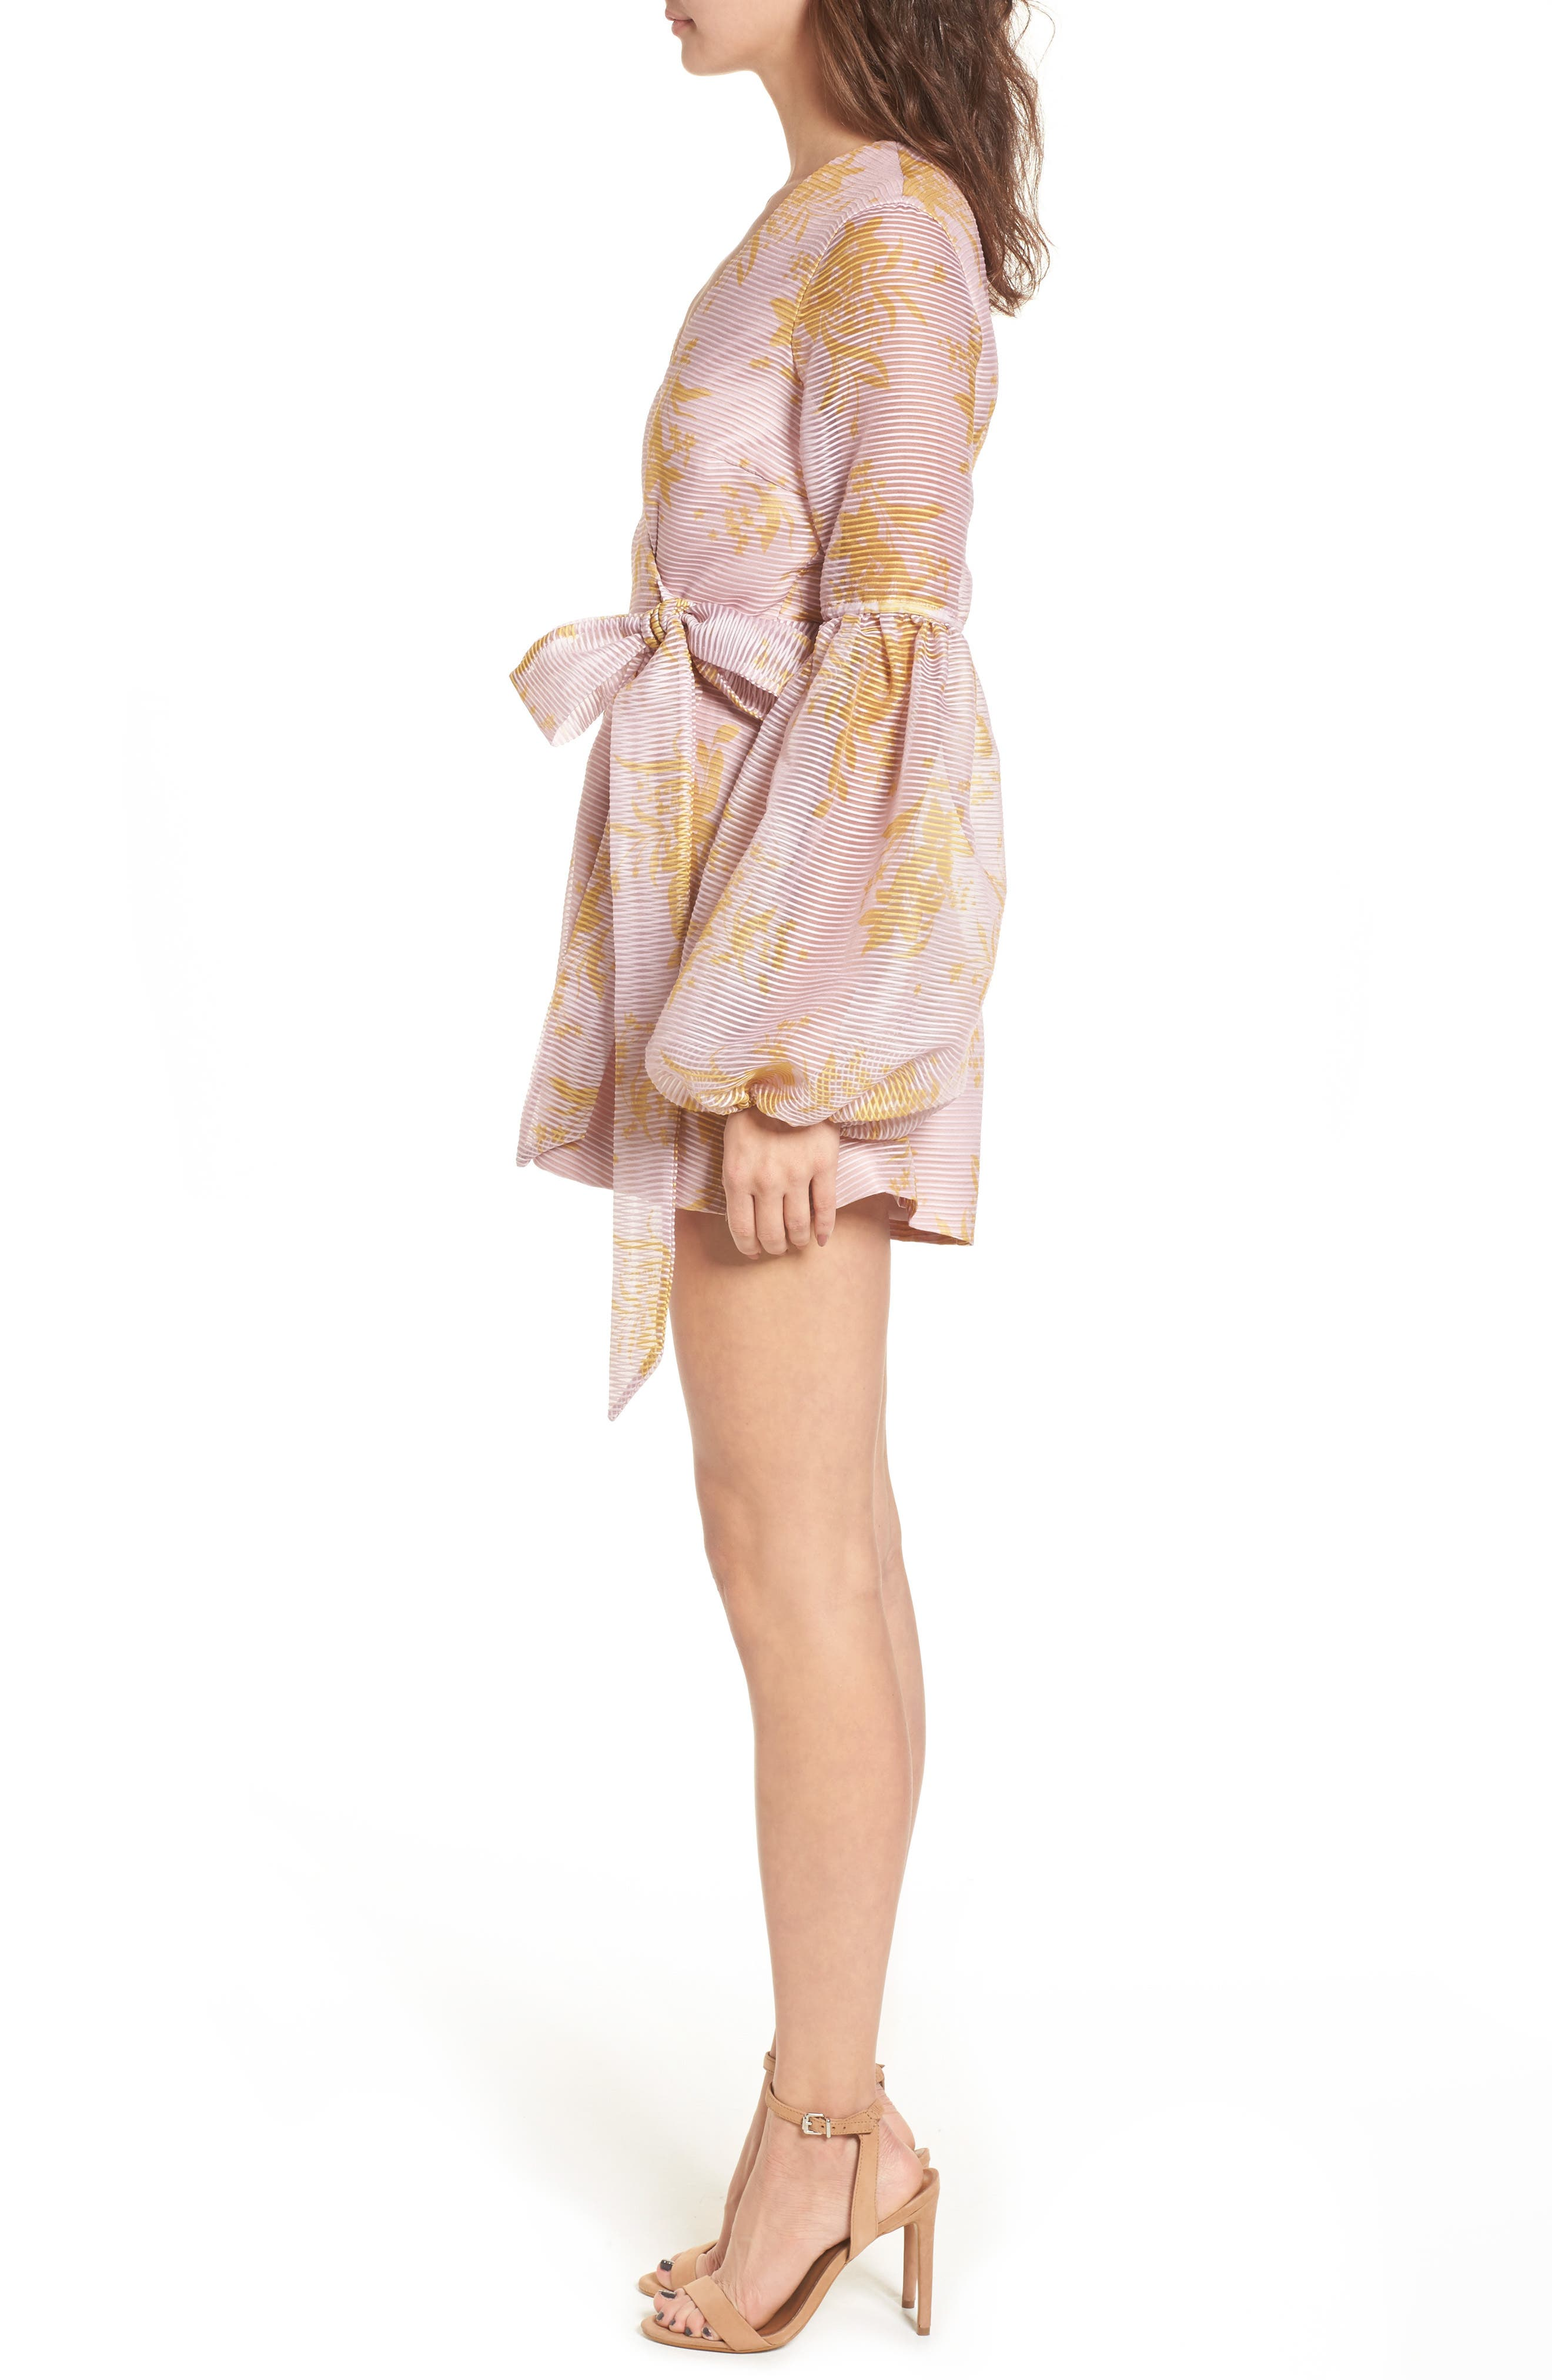 Stand Tall Romper,                             Alternate thumbnail 3, color,                             Blush Stencil Floral